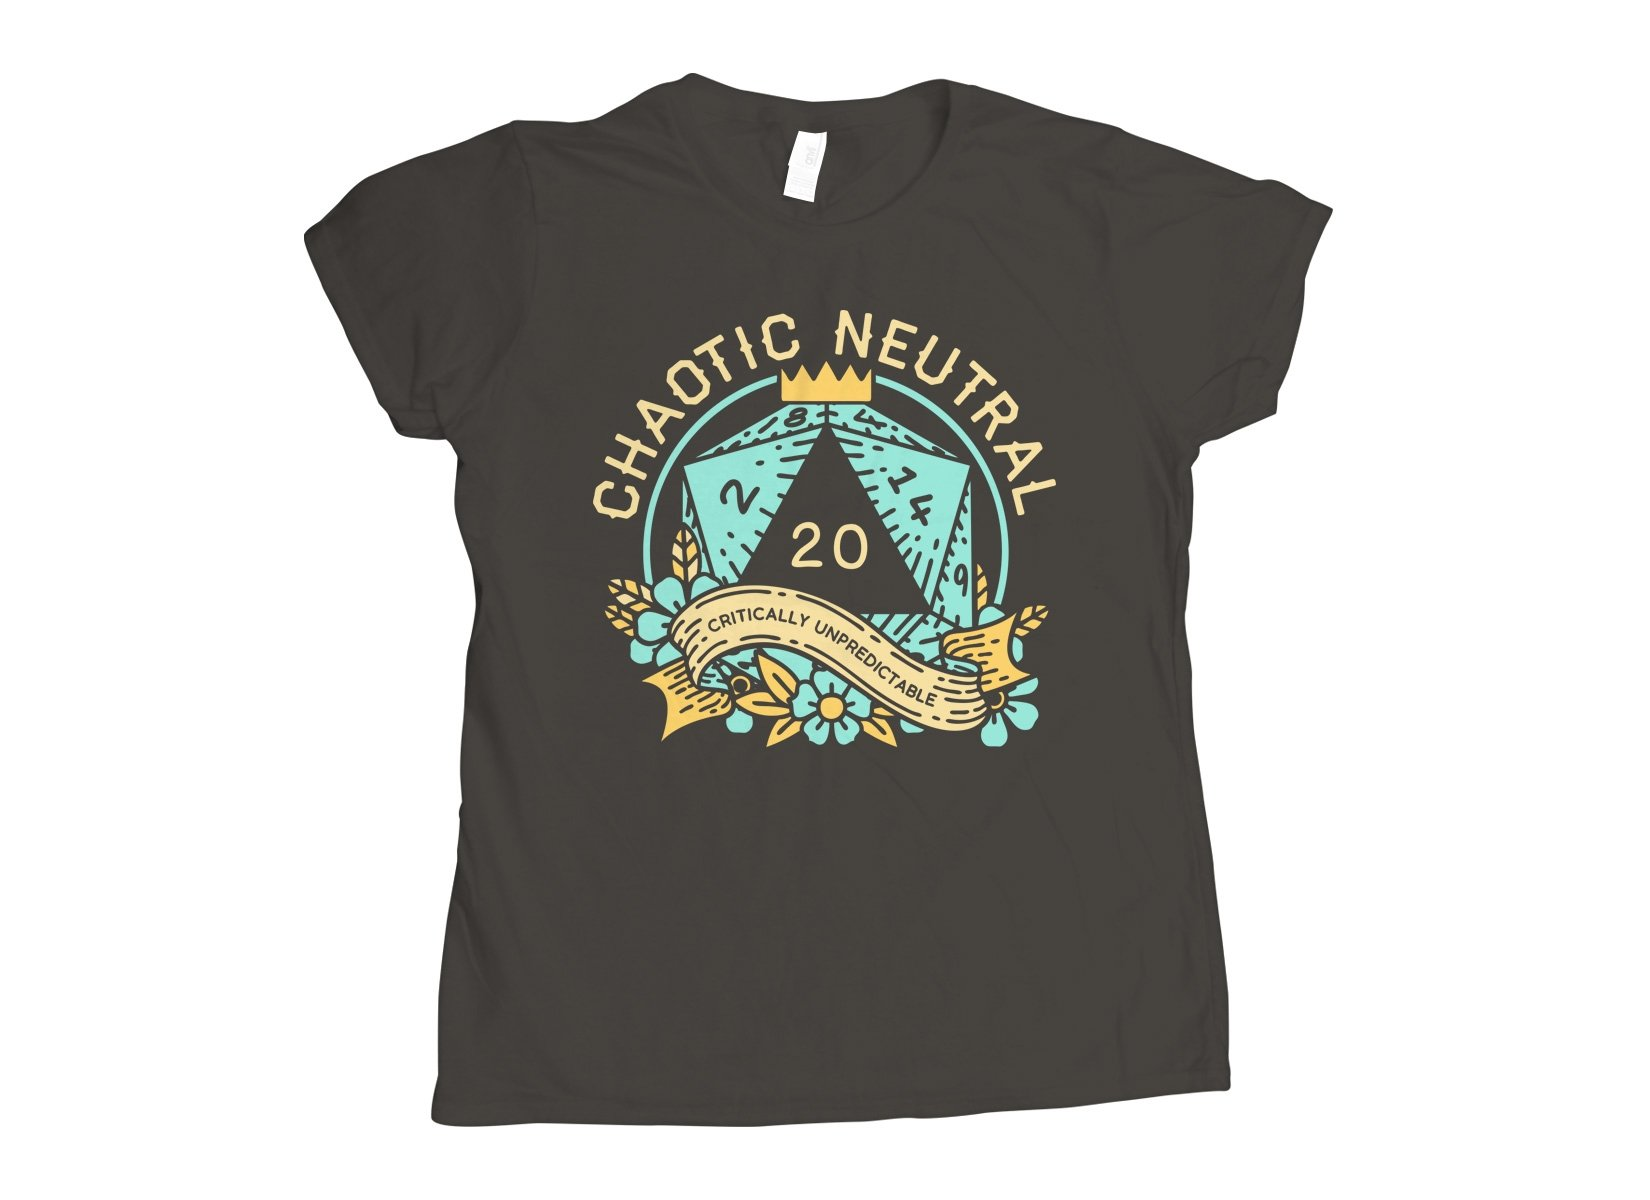 Chaotic Neutral on Womens T-Shirt